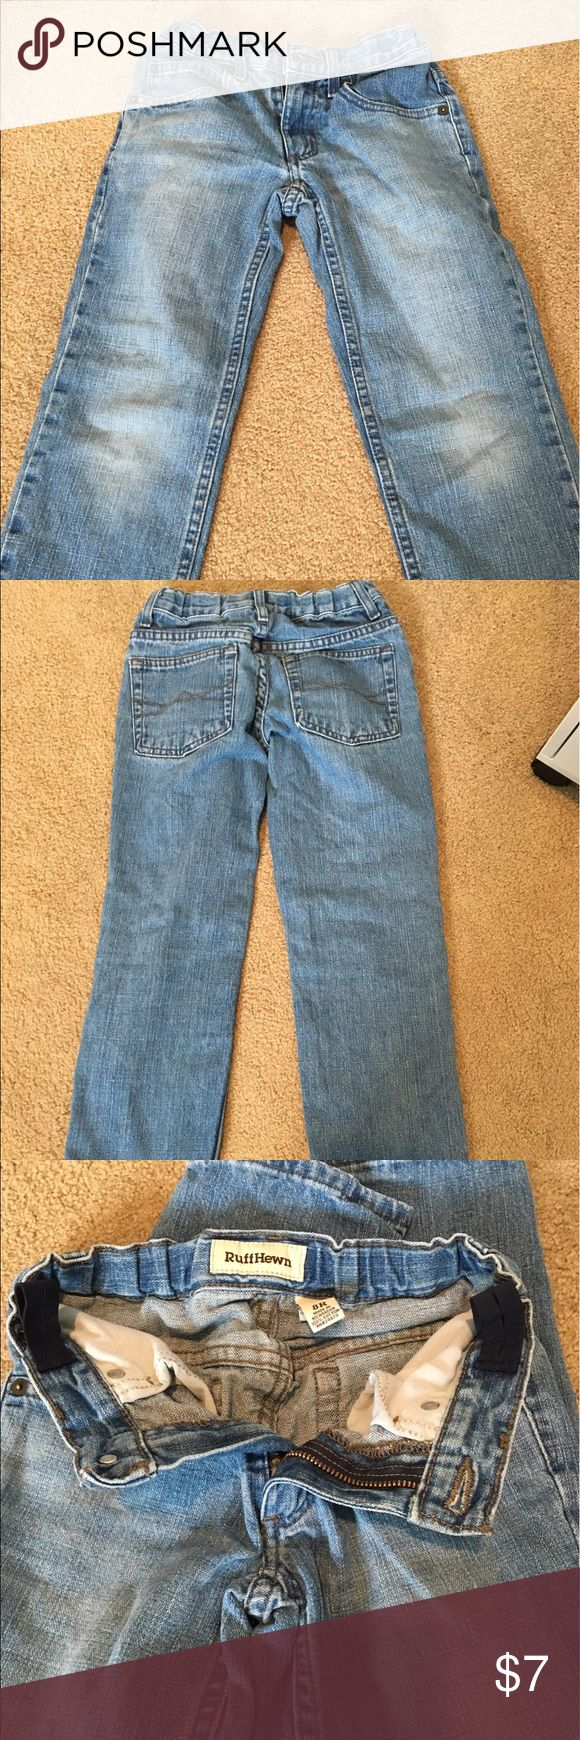 Ruff Hewn Boys Jeans These boys jeans are very lightly used. No stains or rips's. They feature an elastic adjustable waist too. Ruff Hewn Bottoms Jeans